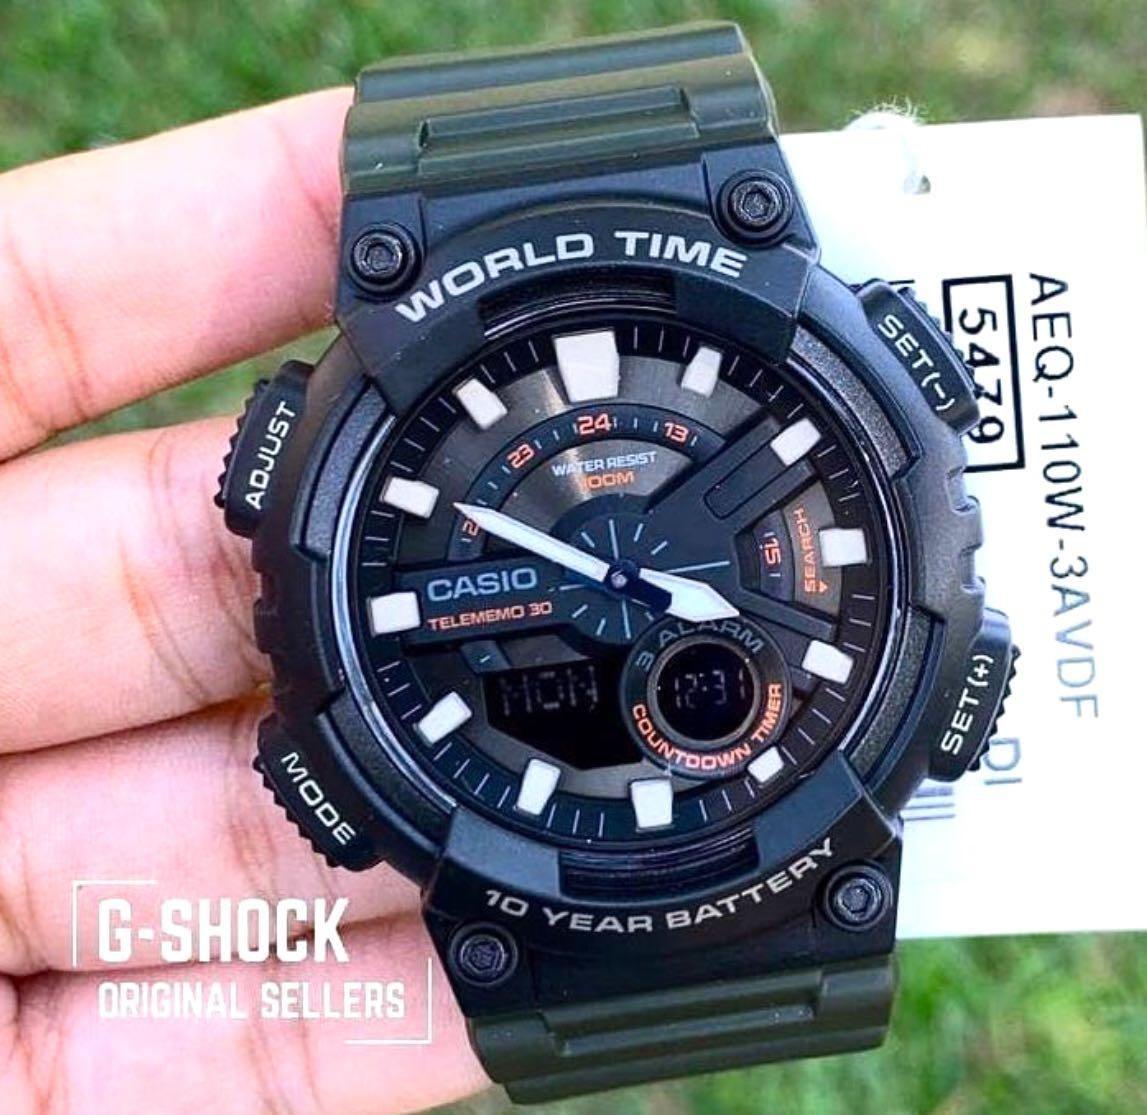 NEW🌟CASIO DIVER UNISEX SPORTS WATCH : 100% ORIGINAL AUTHENTIC : By BABY-G-SHOCK ( GSHOCK ) COMPANY : AEQ-110W-3AVDF-5479 (MILITARY-GREEN RAINFOREST)